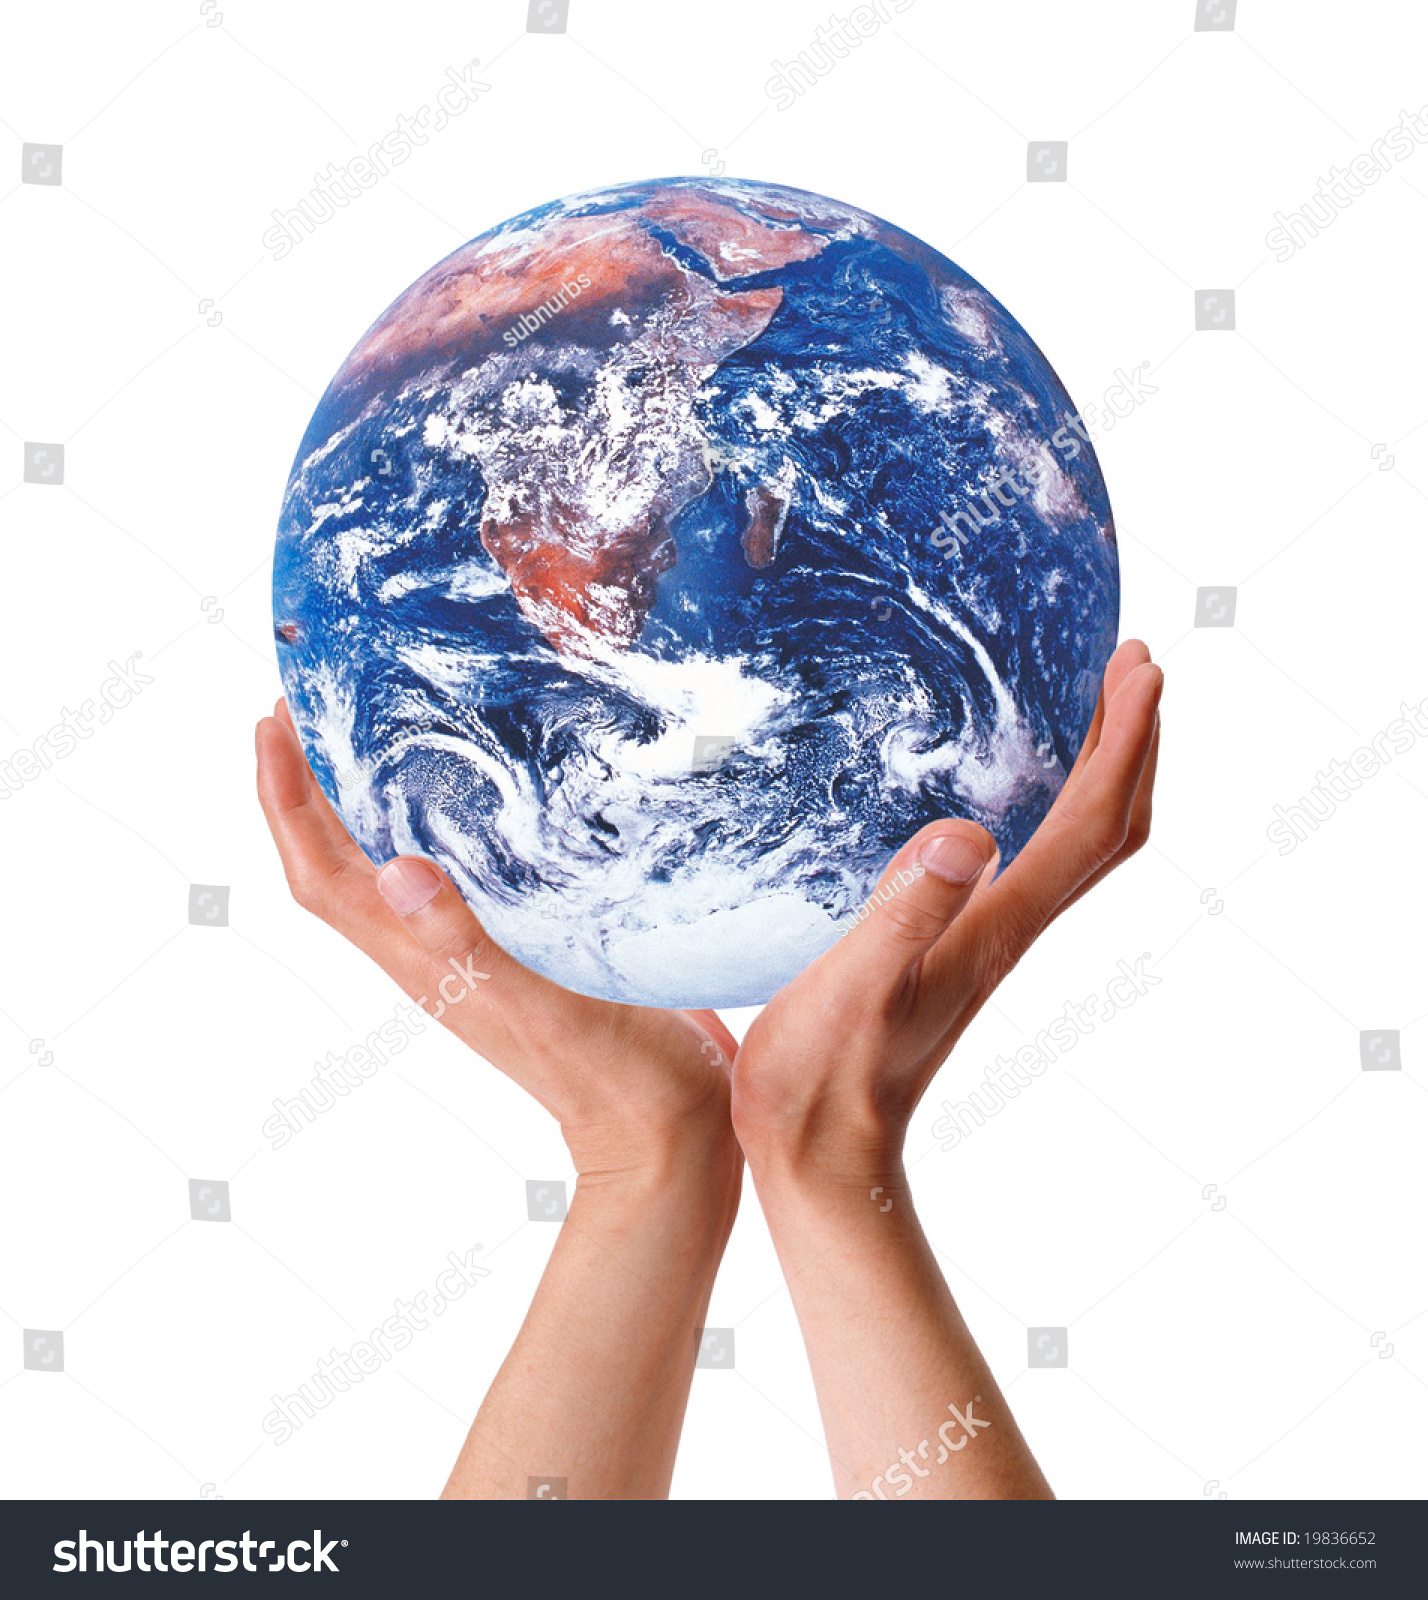 Both Hands Embracing Holding Earth Globe Stock Photo & Image ...